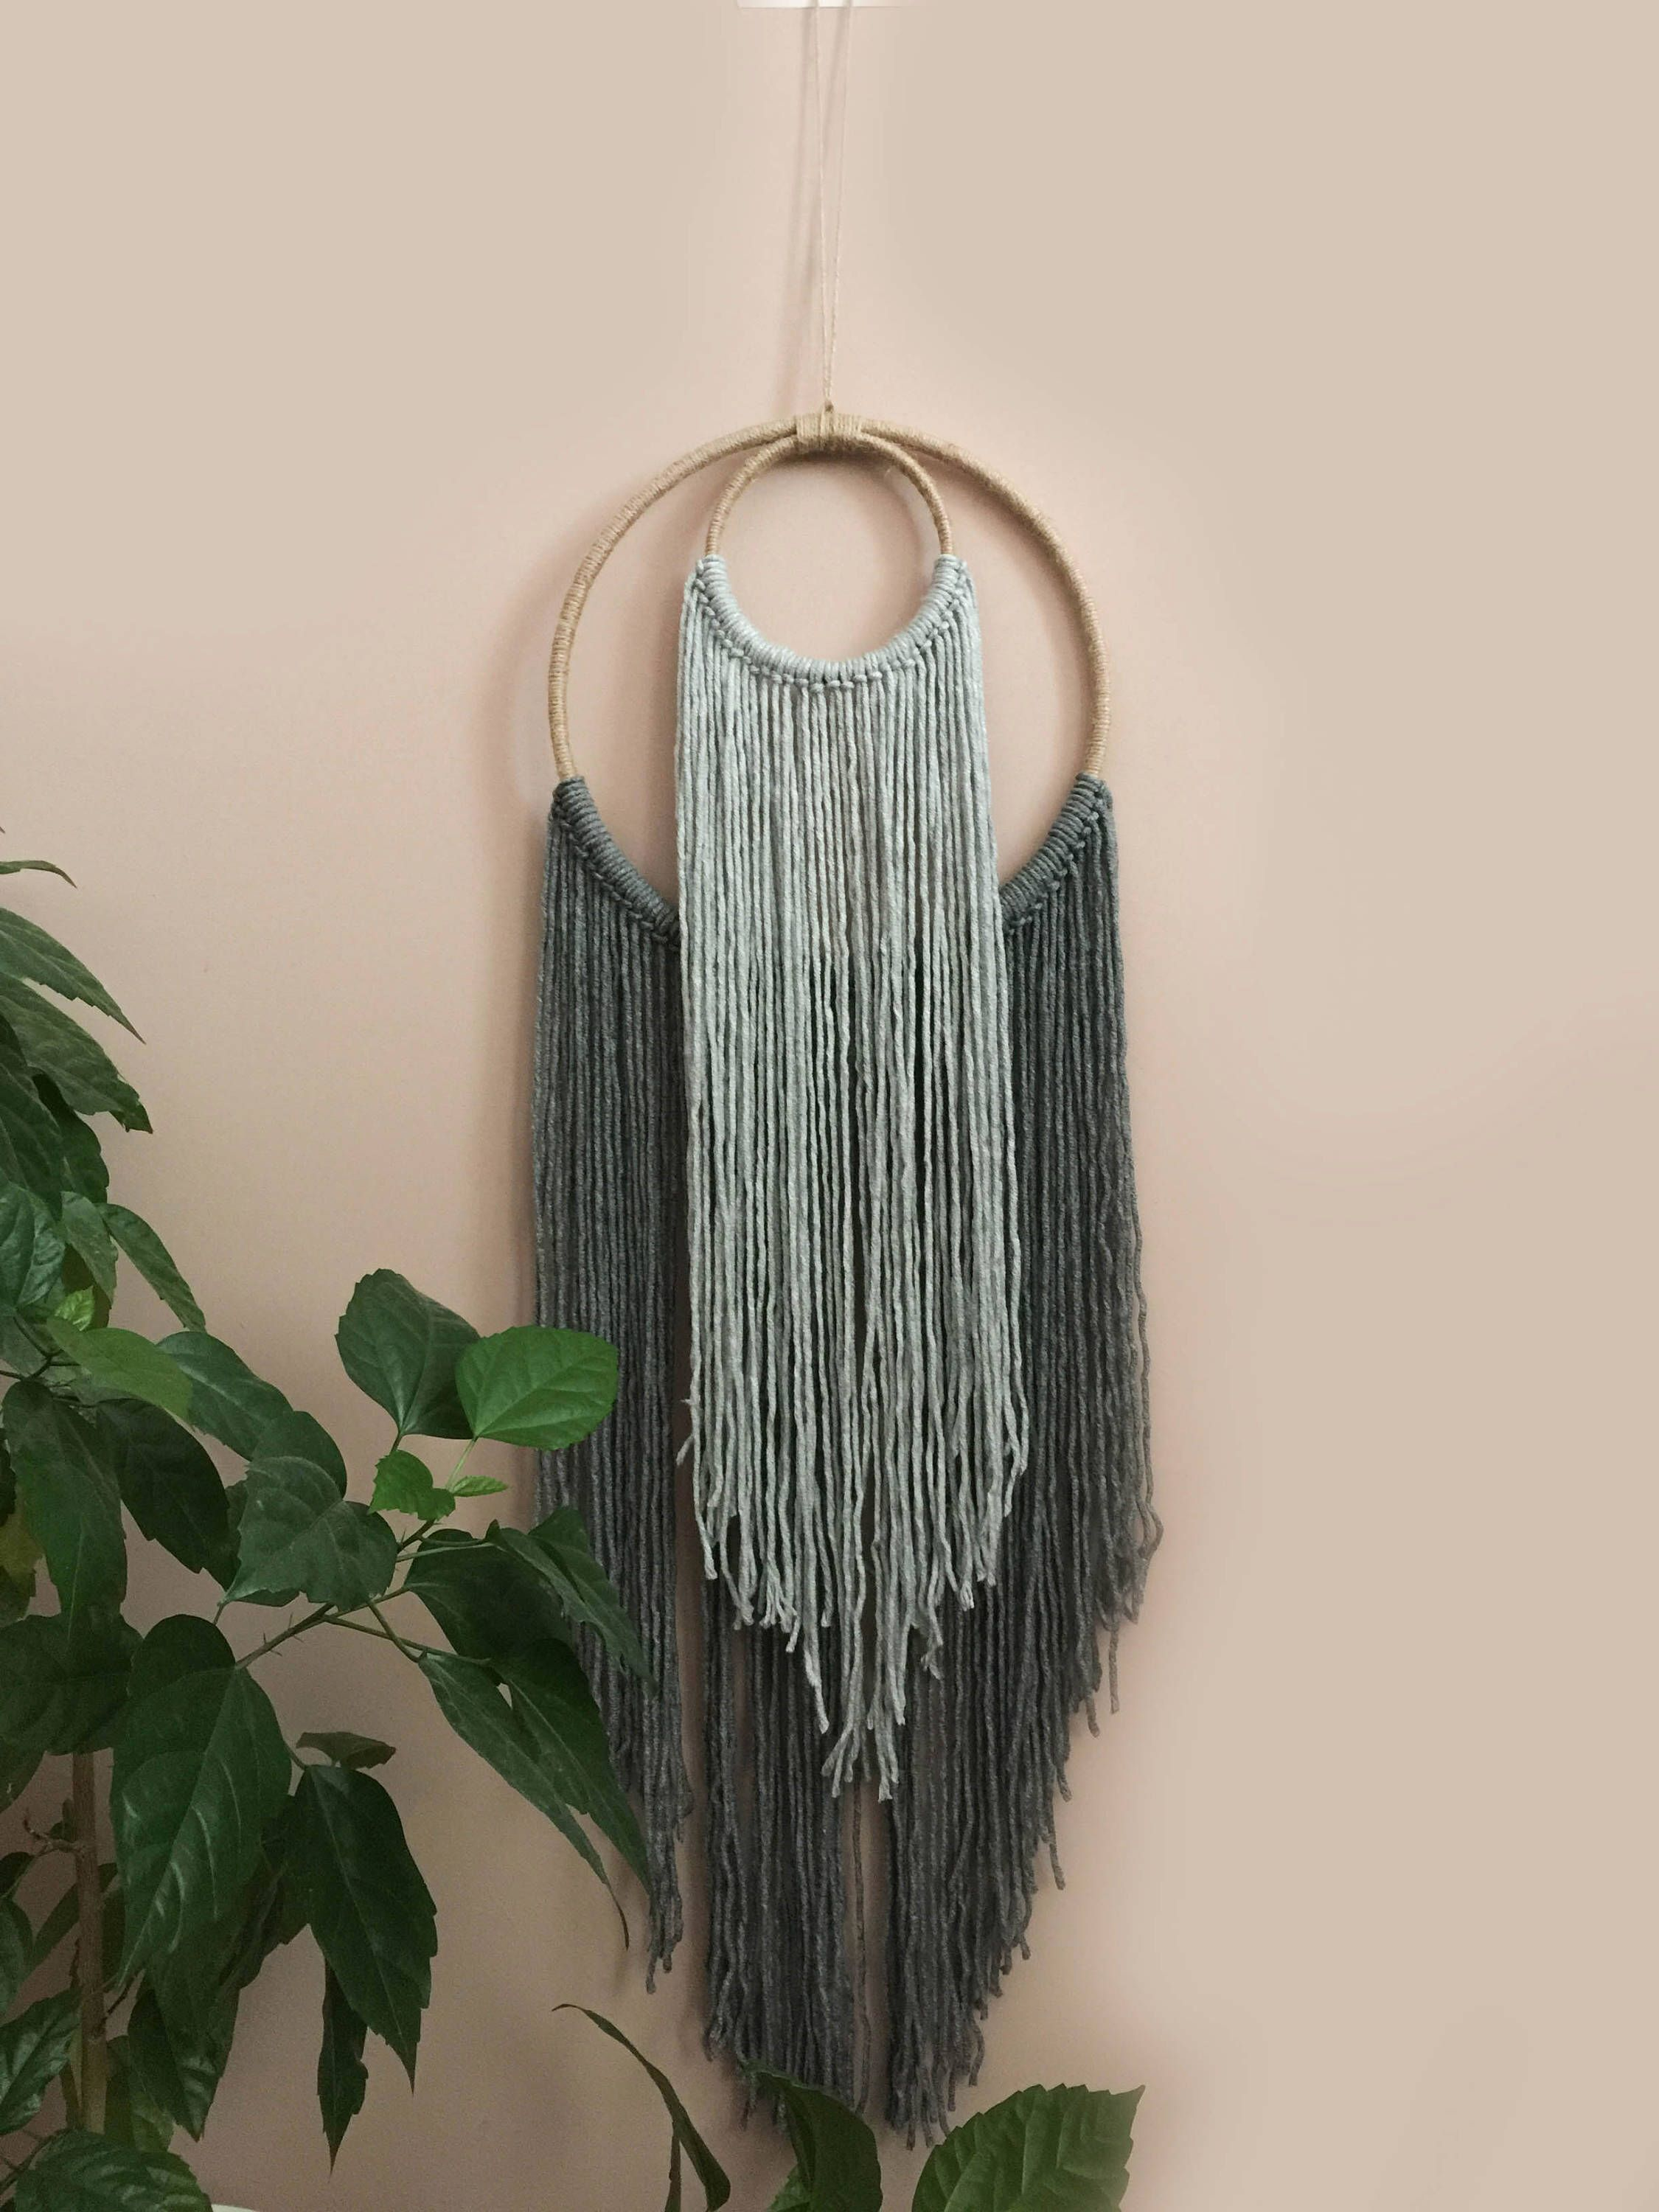 Boho Decor,Wall Decor,Large Wall hanging,Macrame,Diy Wall Decor,Home Decor,Bohemian Decor,Yarn Wall Hanging,Macrame Wall Hanging,Boho Wall